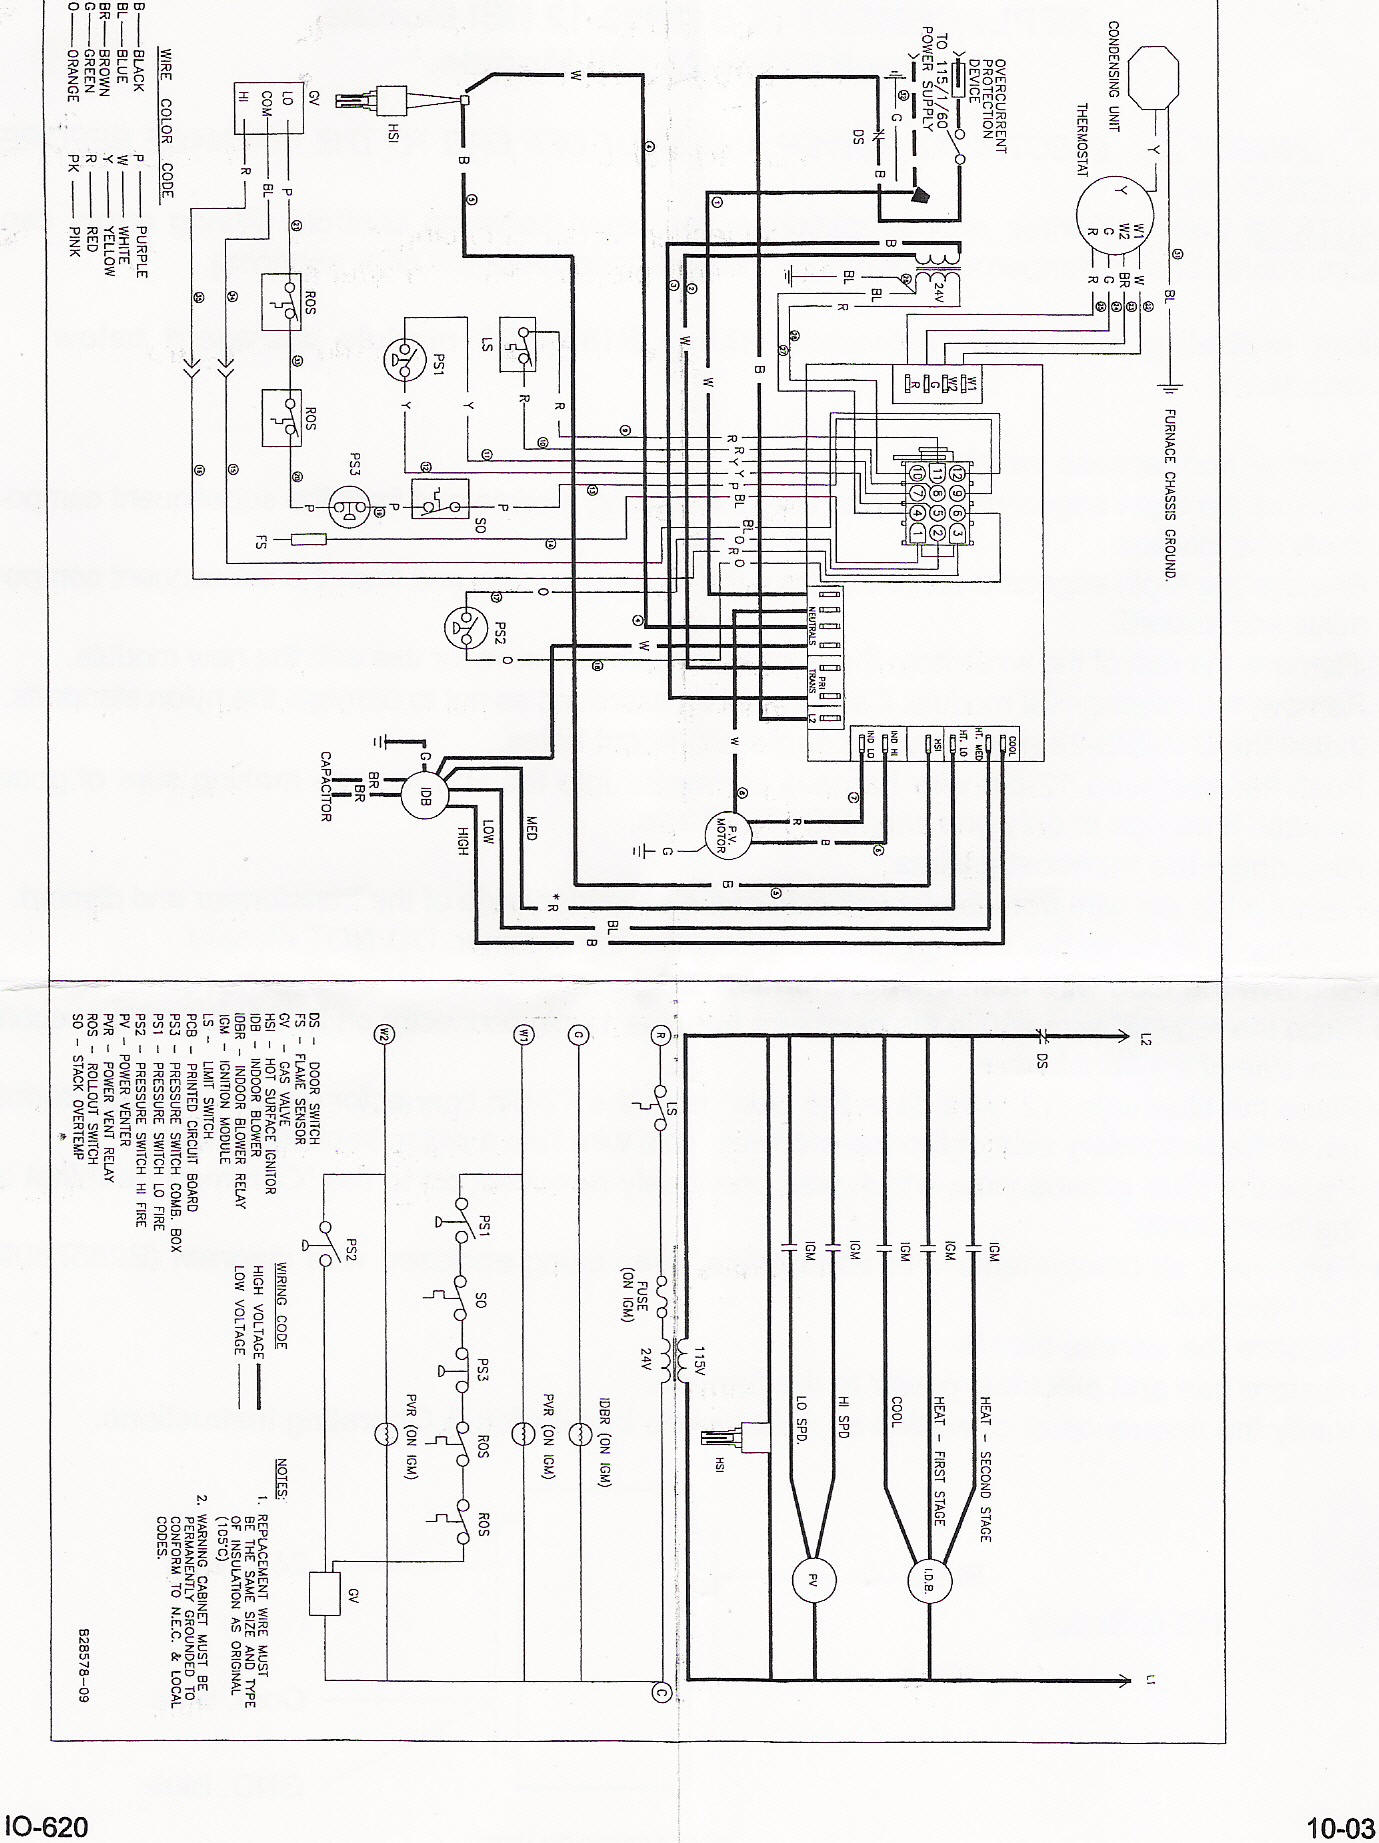 goodma2 instr goodman control board b18099 23 instructions goodman air handler wiring diagrams at bayanpartner.co